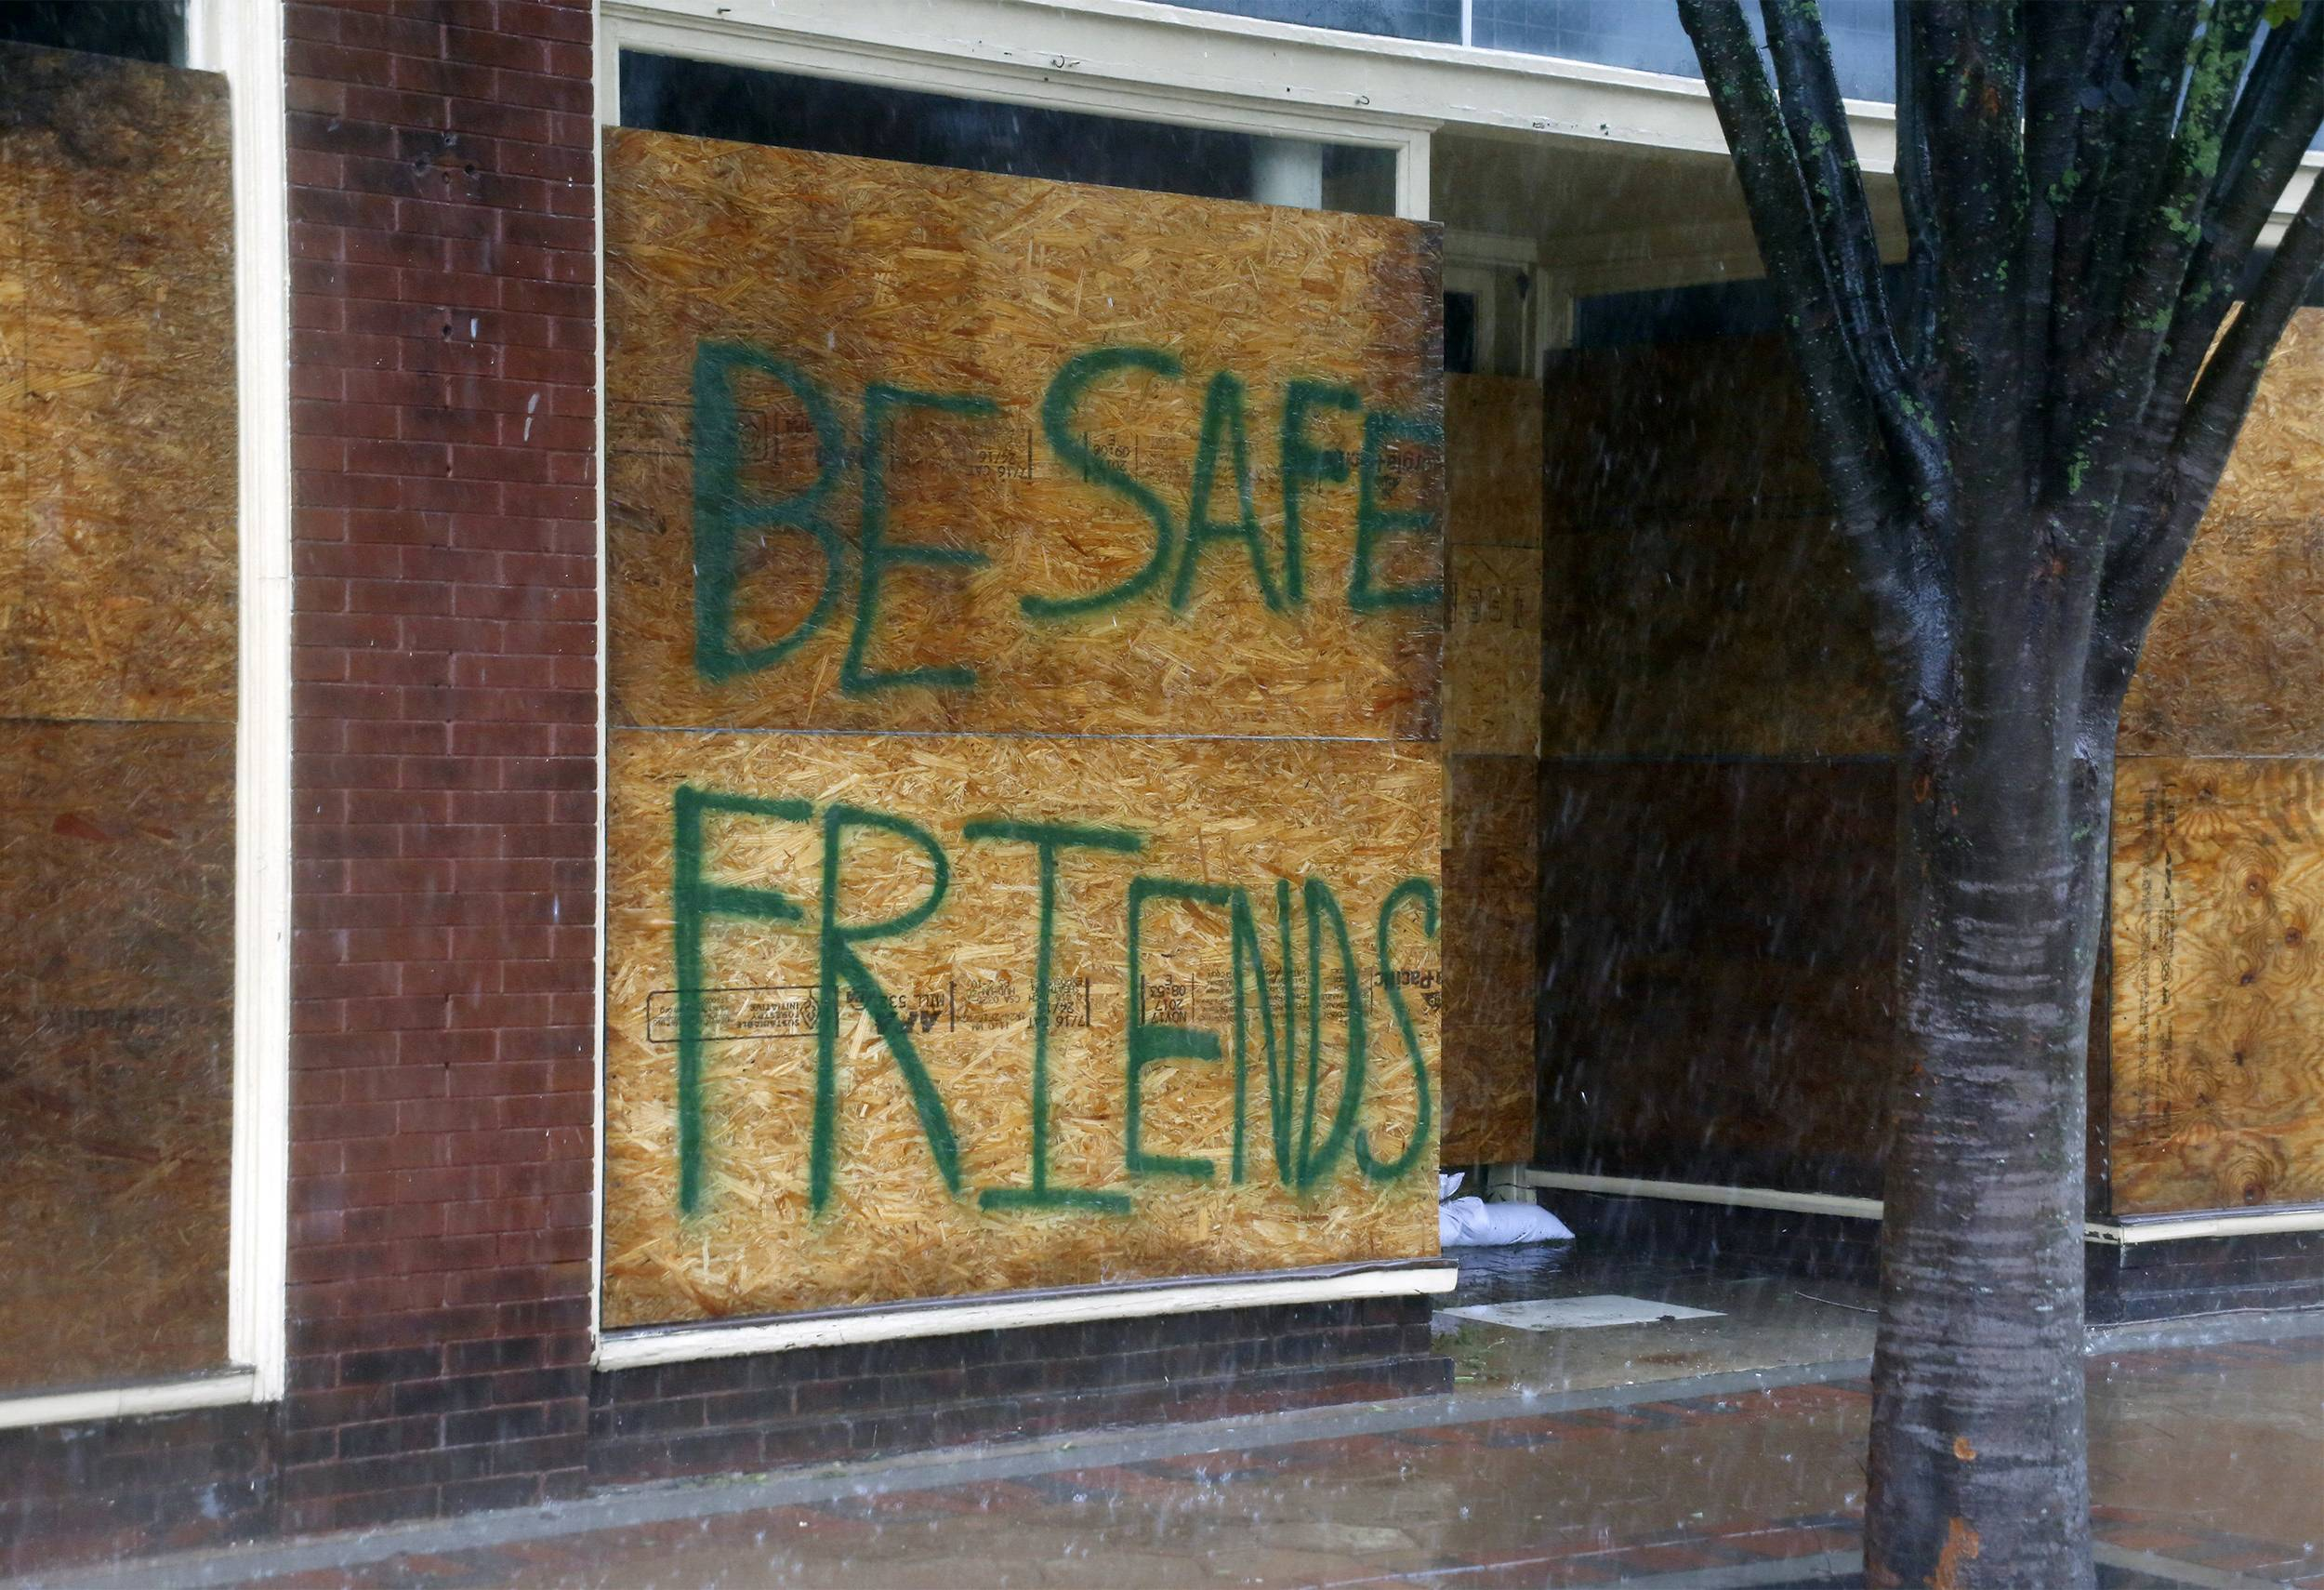 A message on a boarded-up business encourages people to be safe as Hurricane Florence hits downtown New Bern, N.C., on Friday, Sept. 14, 2018.